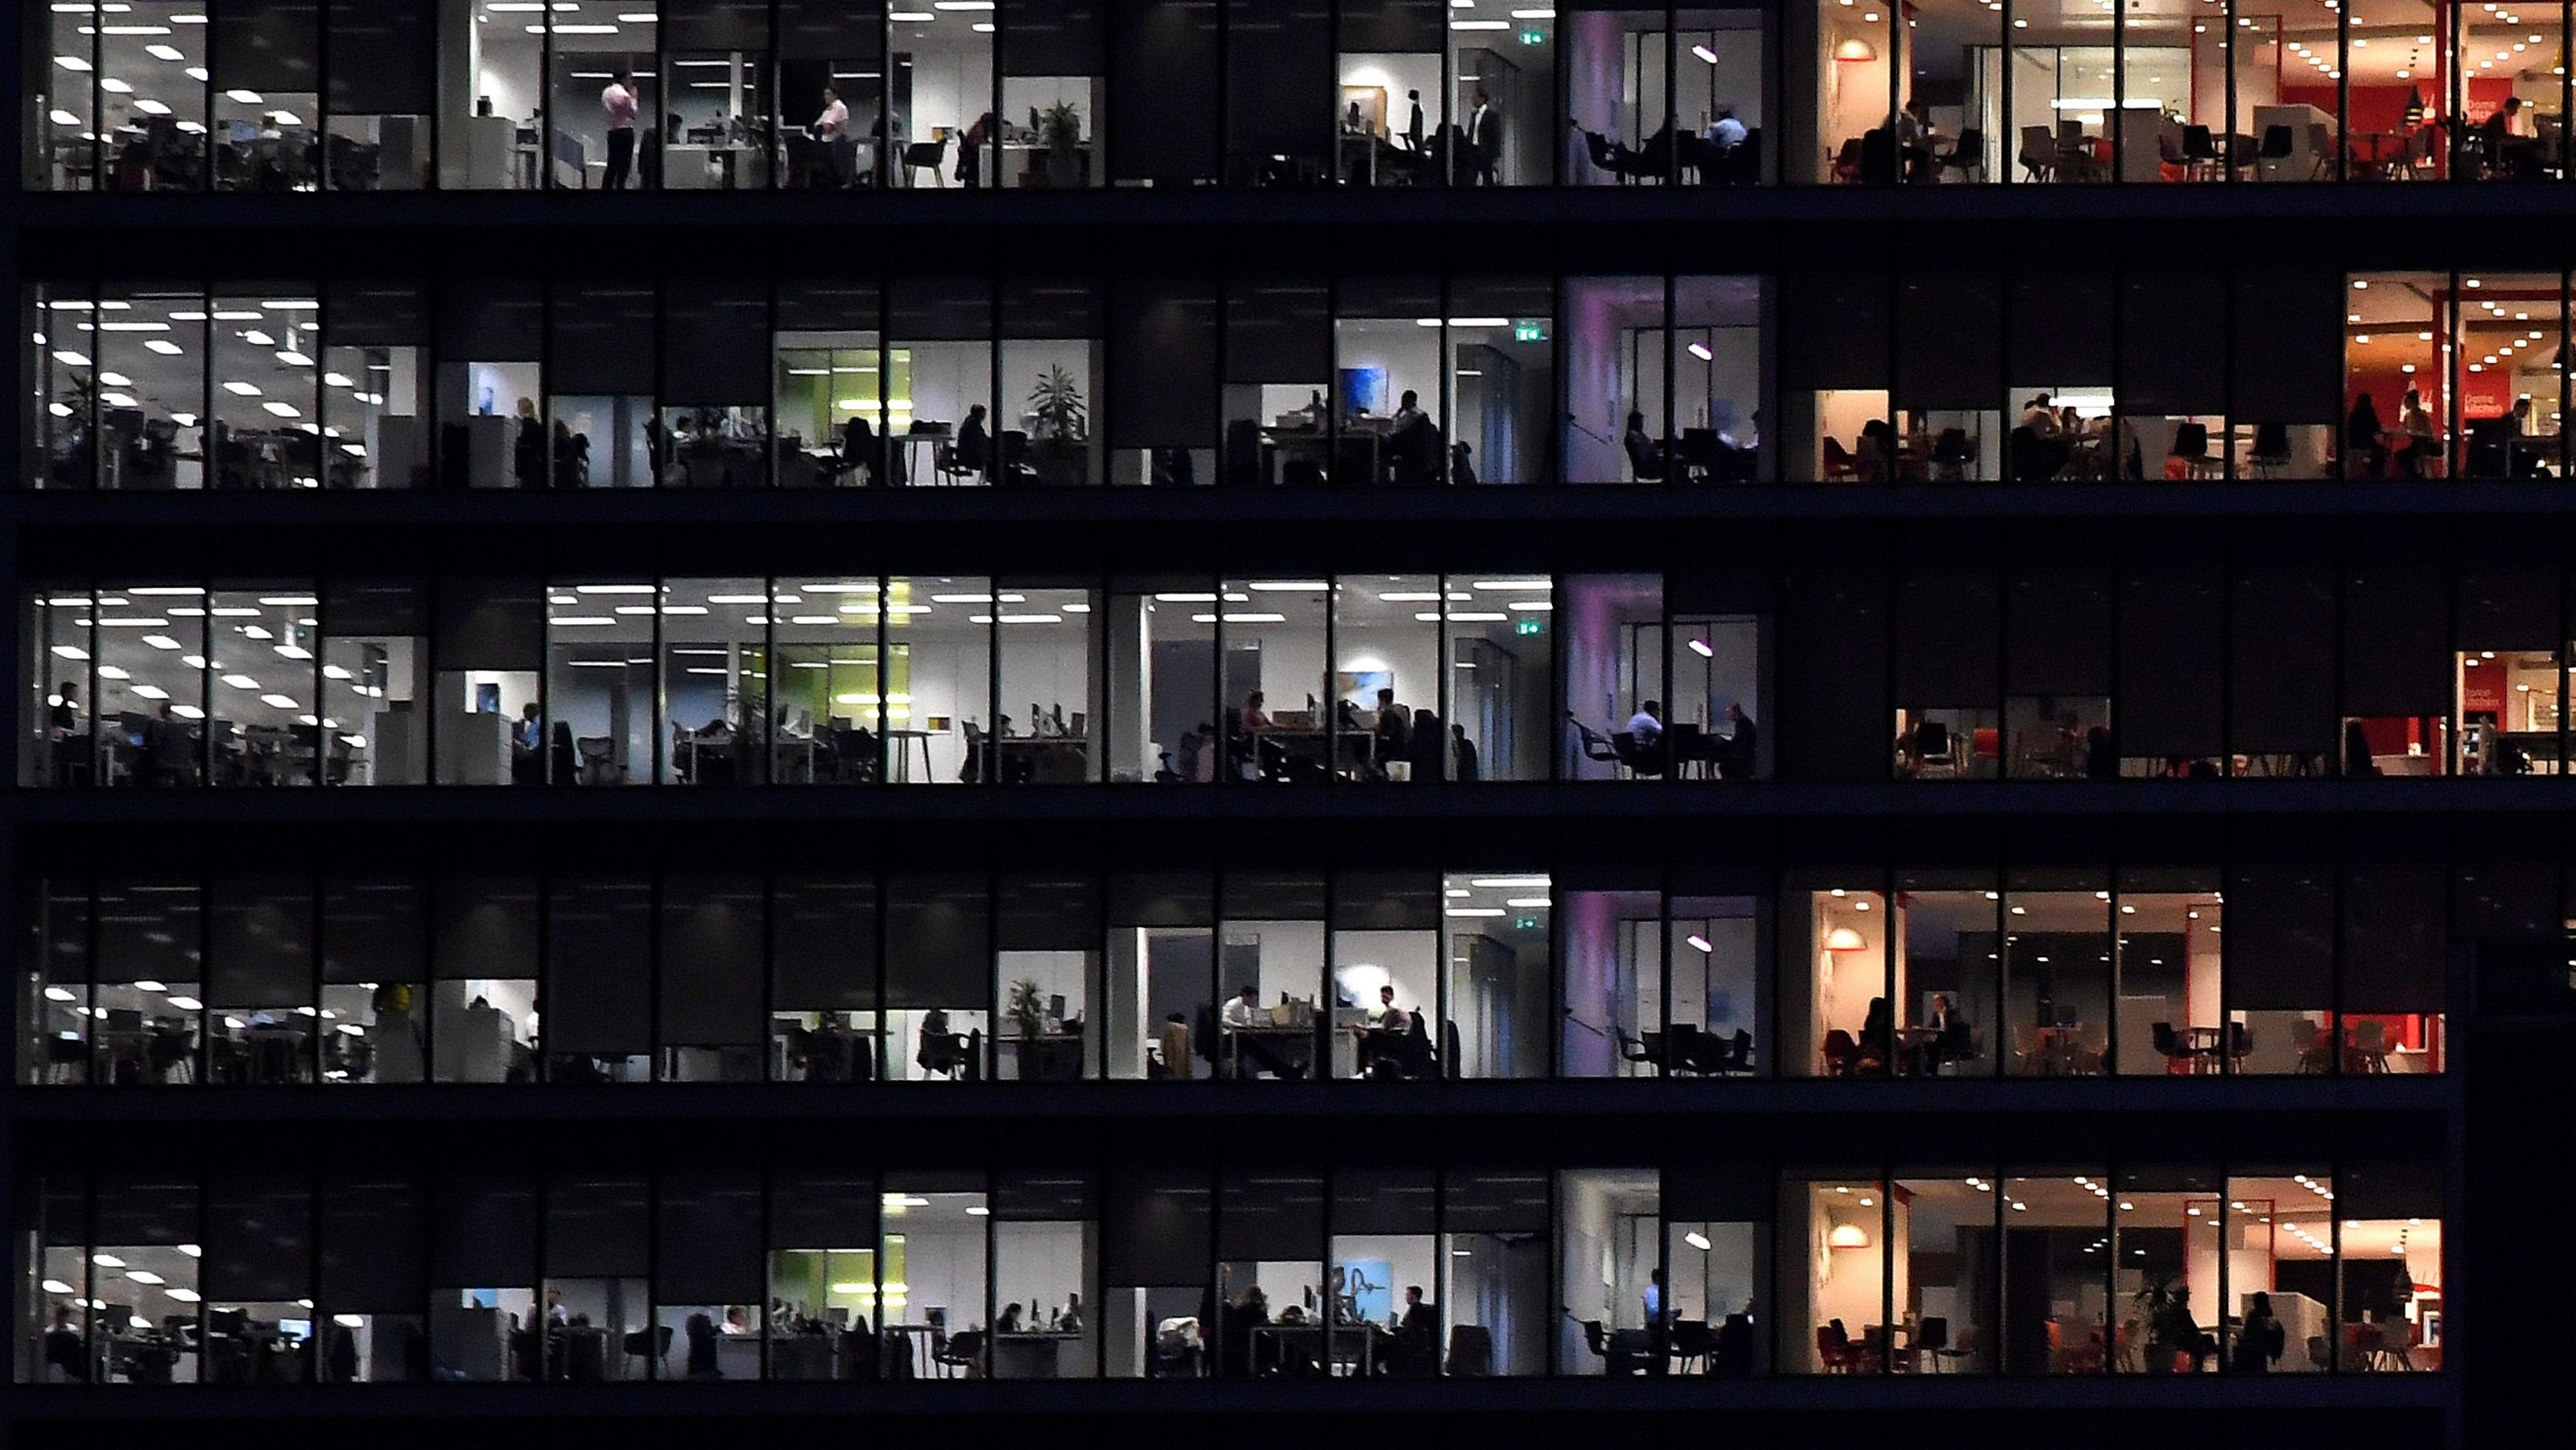 Workers are seen in an office tower